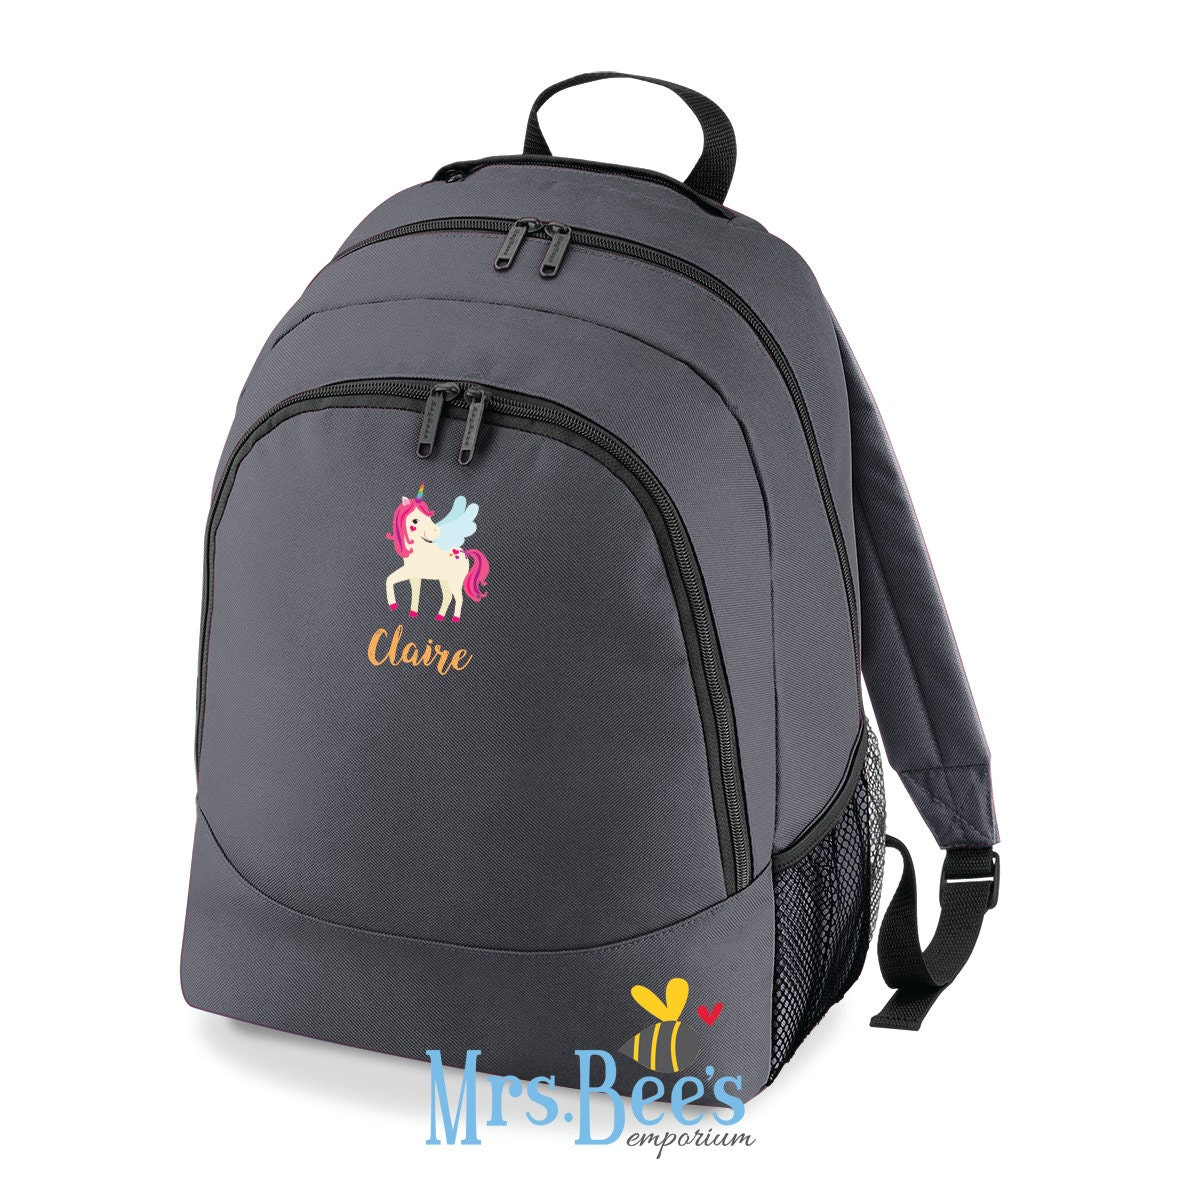 Personalised Kids Backpack  Childrens UnicornPrincess Rucksack Unique Gift for Young Child Back to School Nursery Rucksack